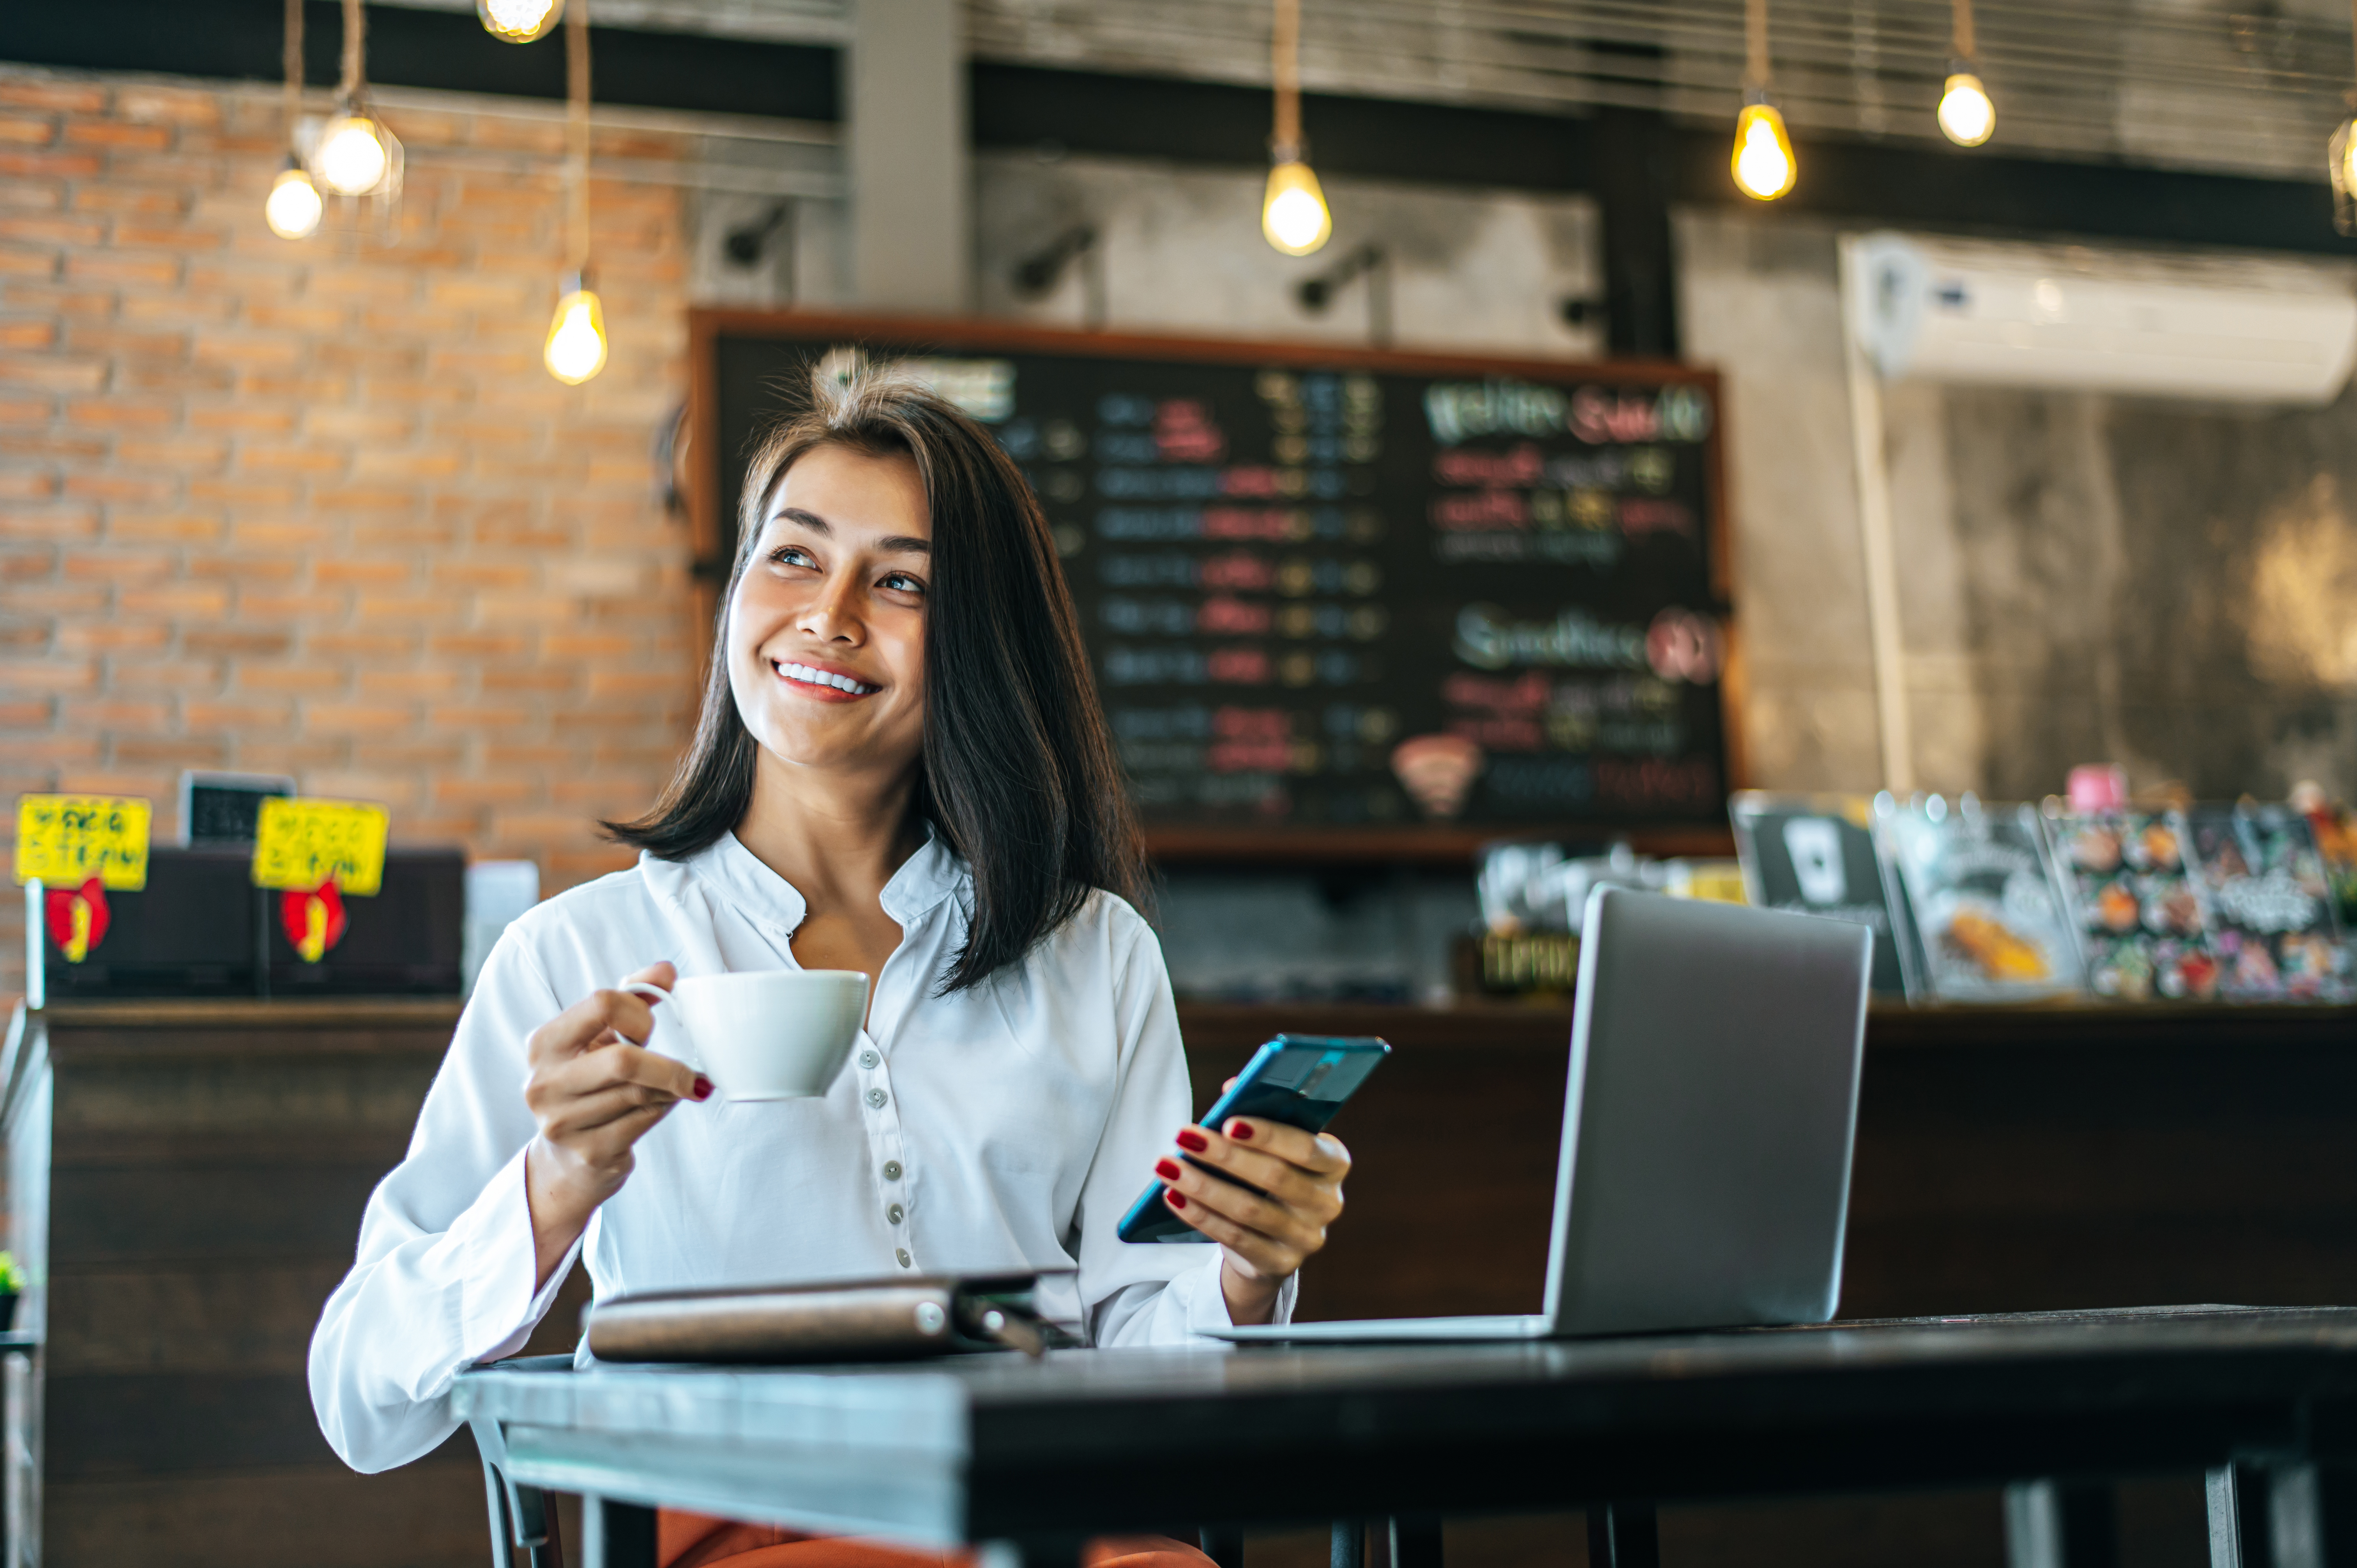 Alternatives to Working from Home or the Local Coffee Shop